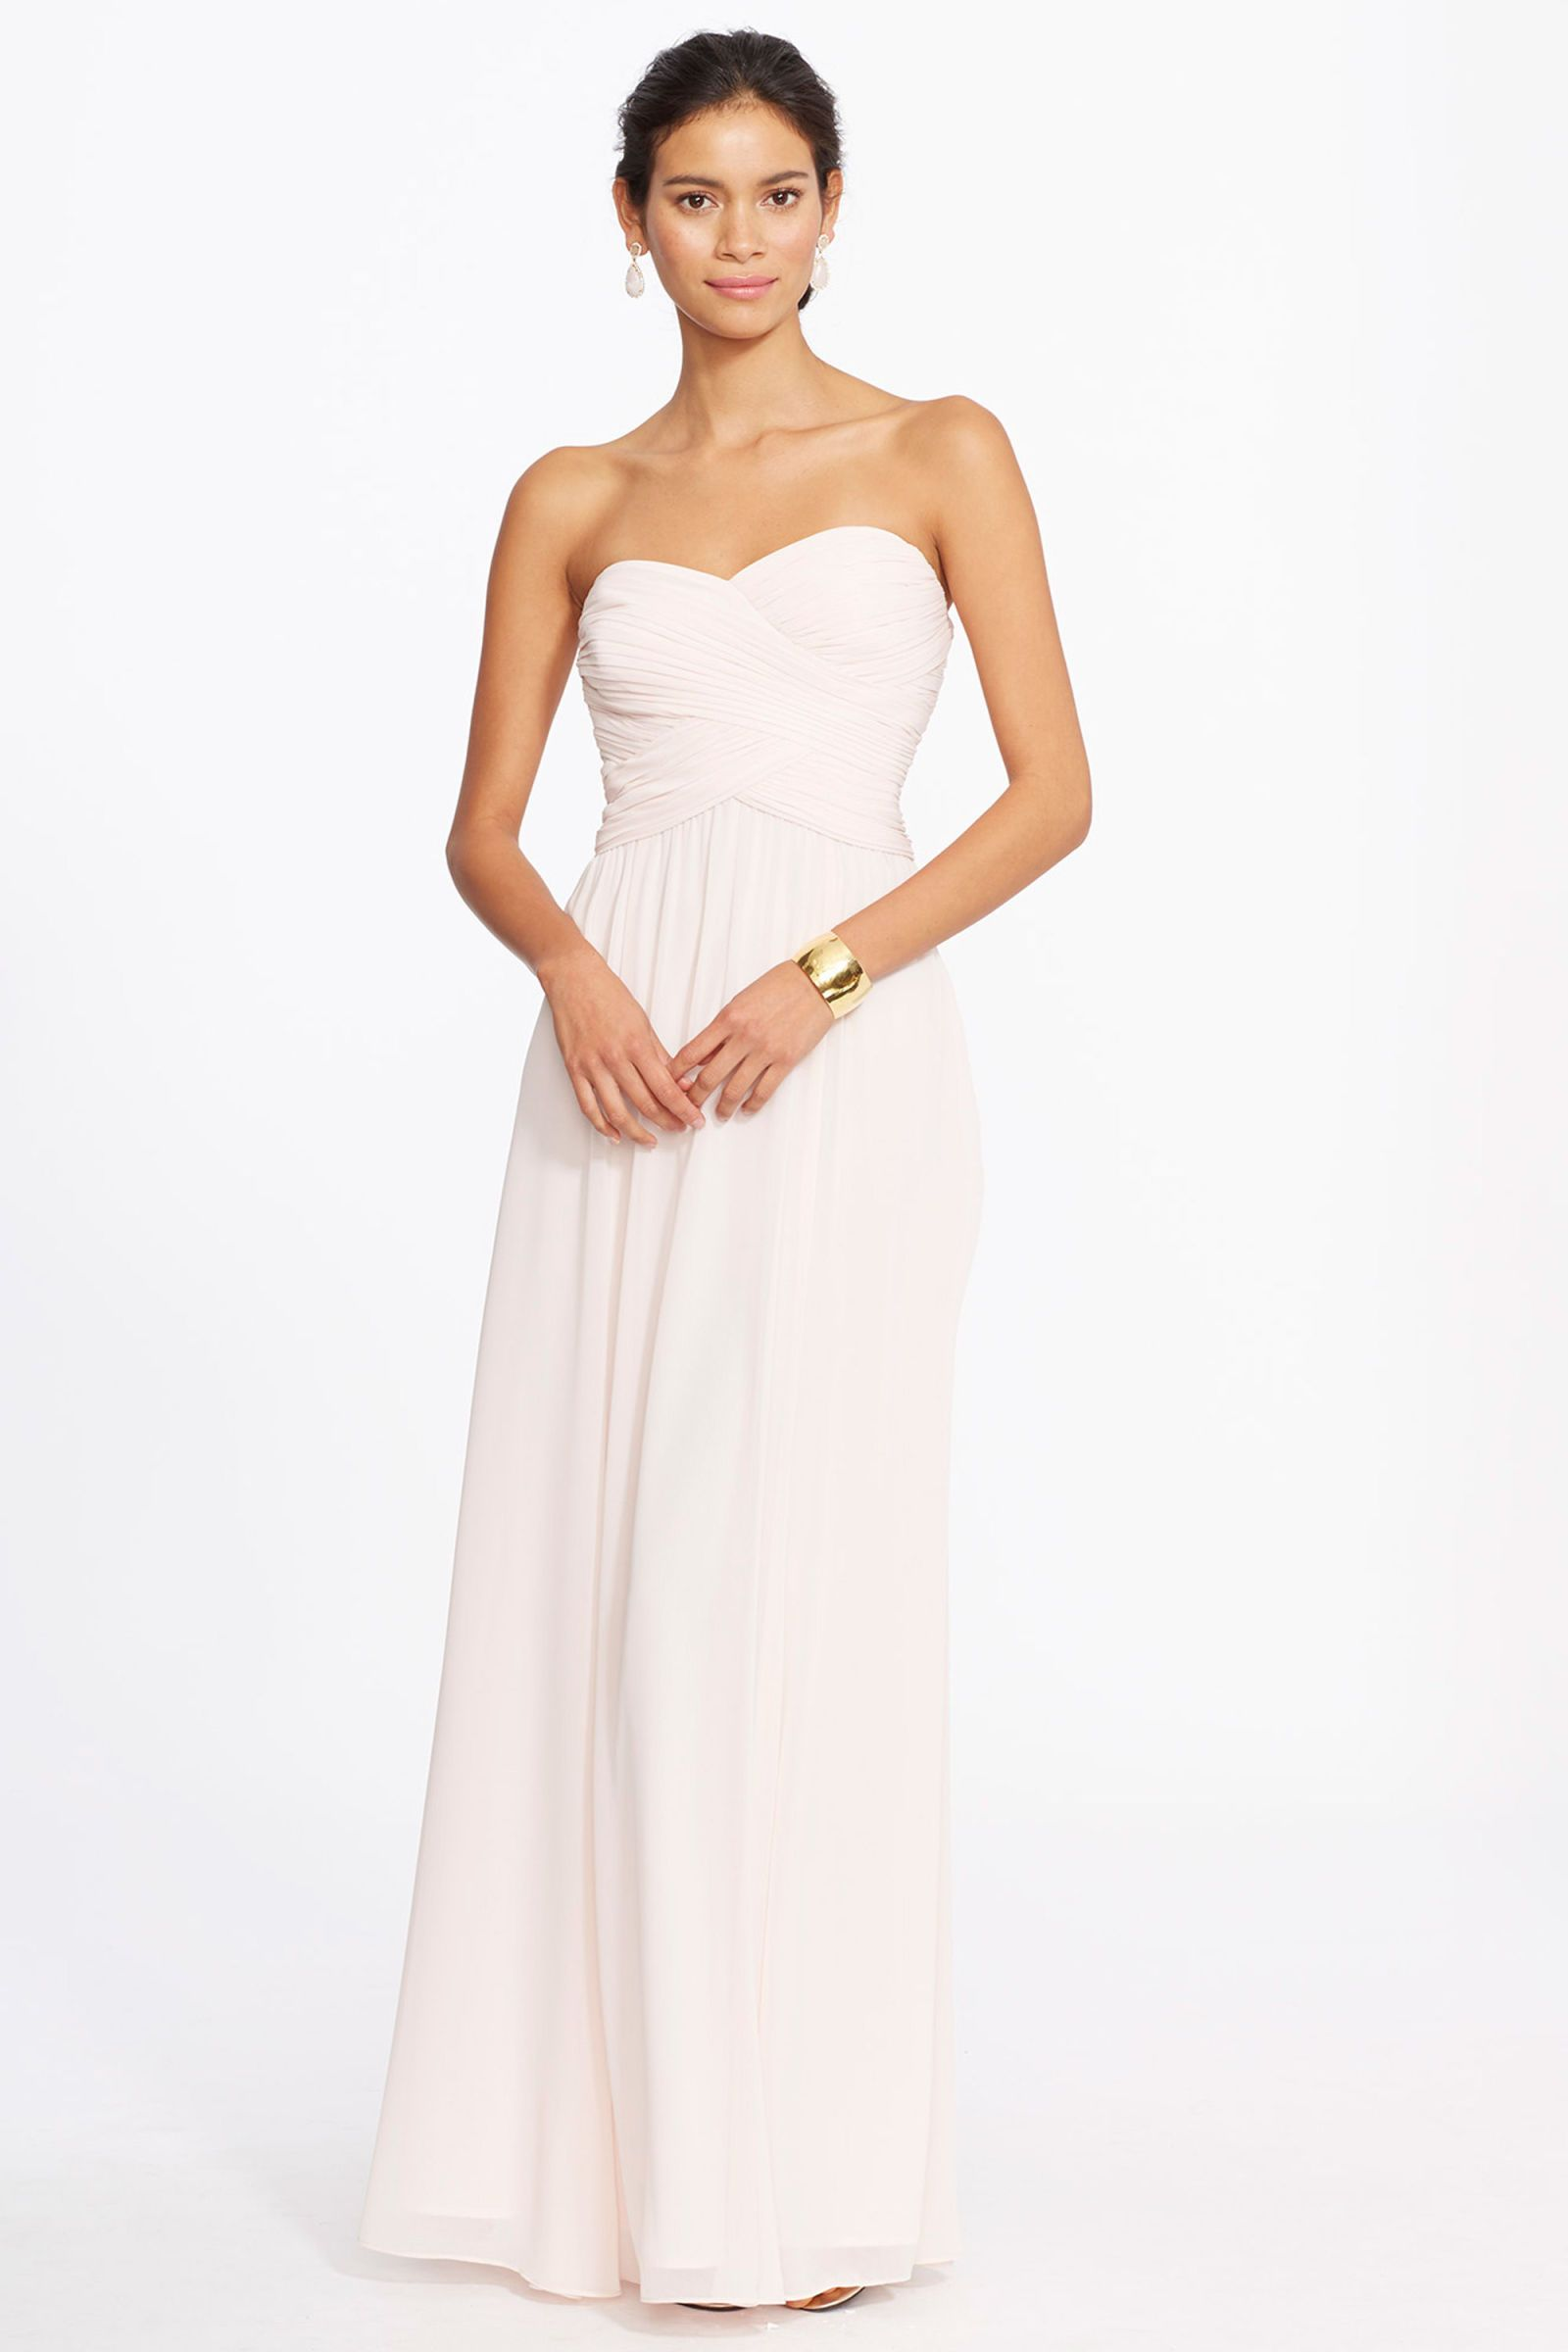 Gorgeous bridesmaid dresses your bridal party will actually want lauren ralph laurens new wedding collection has the prettiest bridesmaid dresses ever ombrellifo Gallery